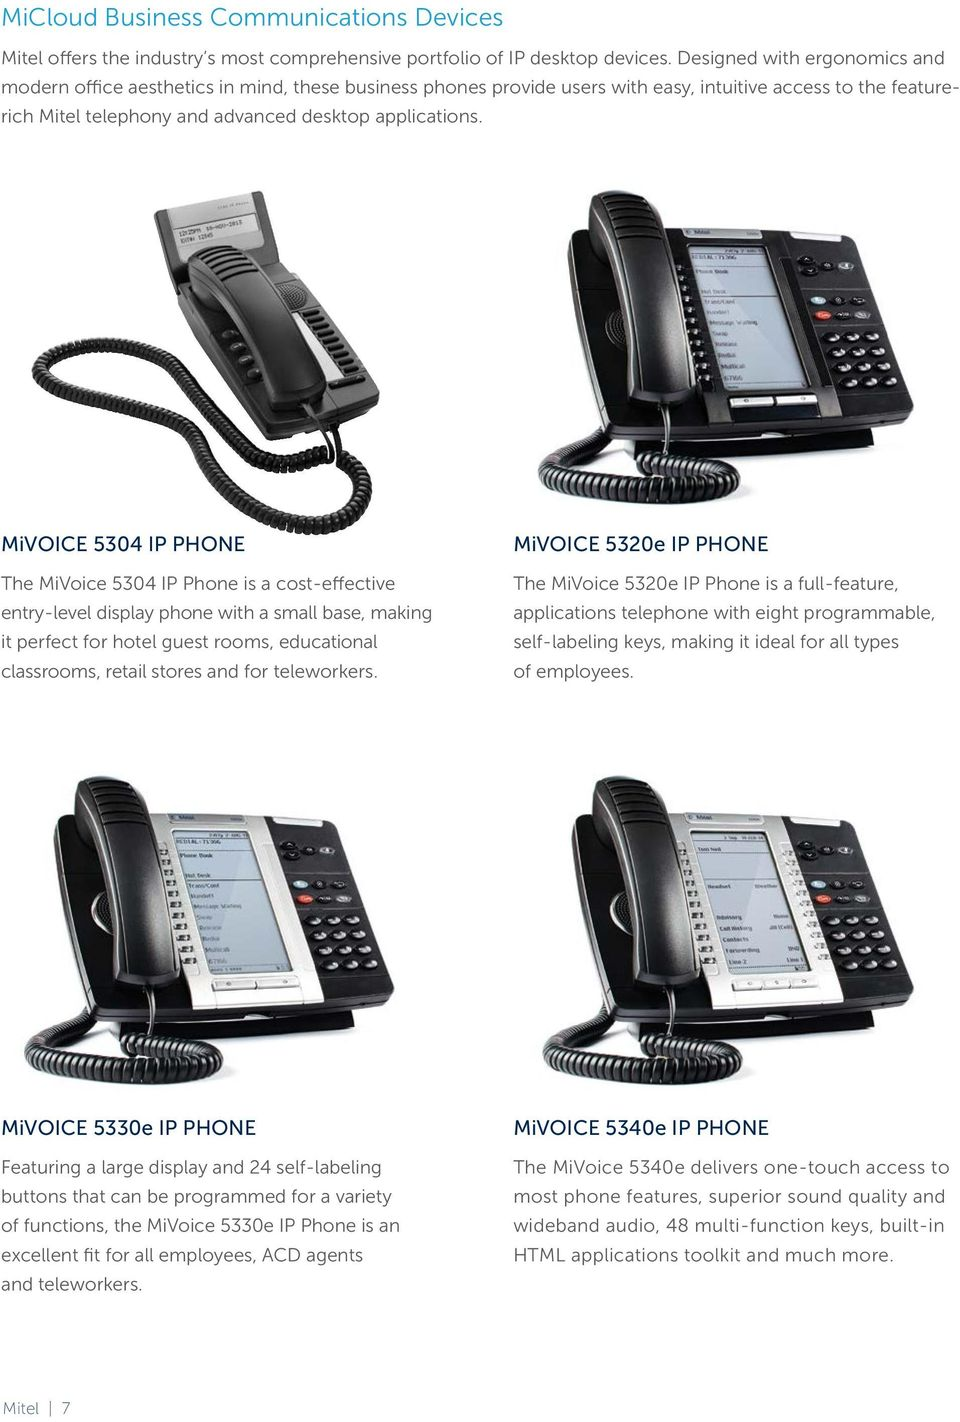 MiVOICE 5304 IP PHONE The MiVoice 5304 IP Phone is a cost-effective entry-level display phone with a small base, making it perfect for hotel guest rooms, educational classrooms, retail stores and for